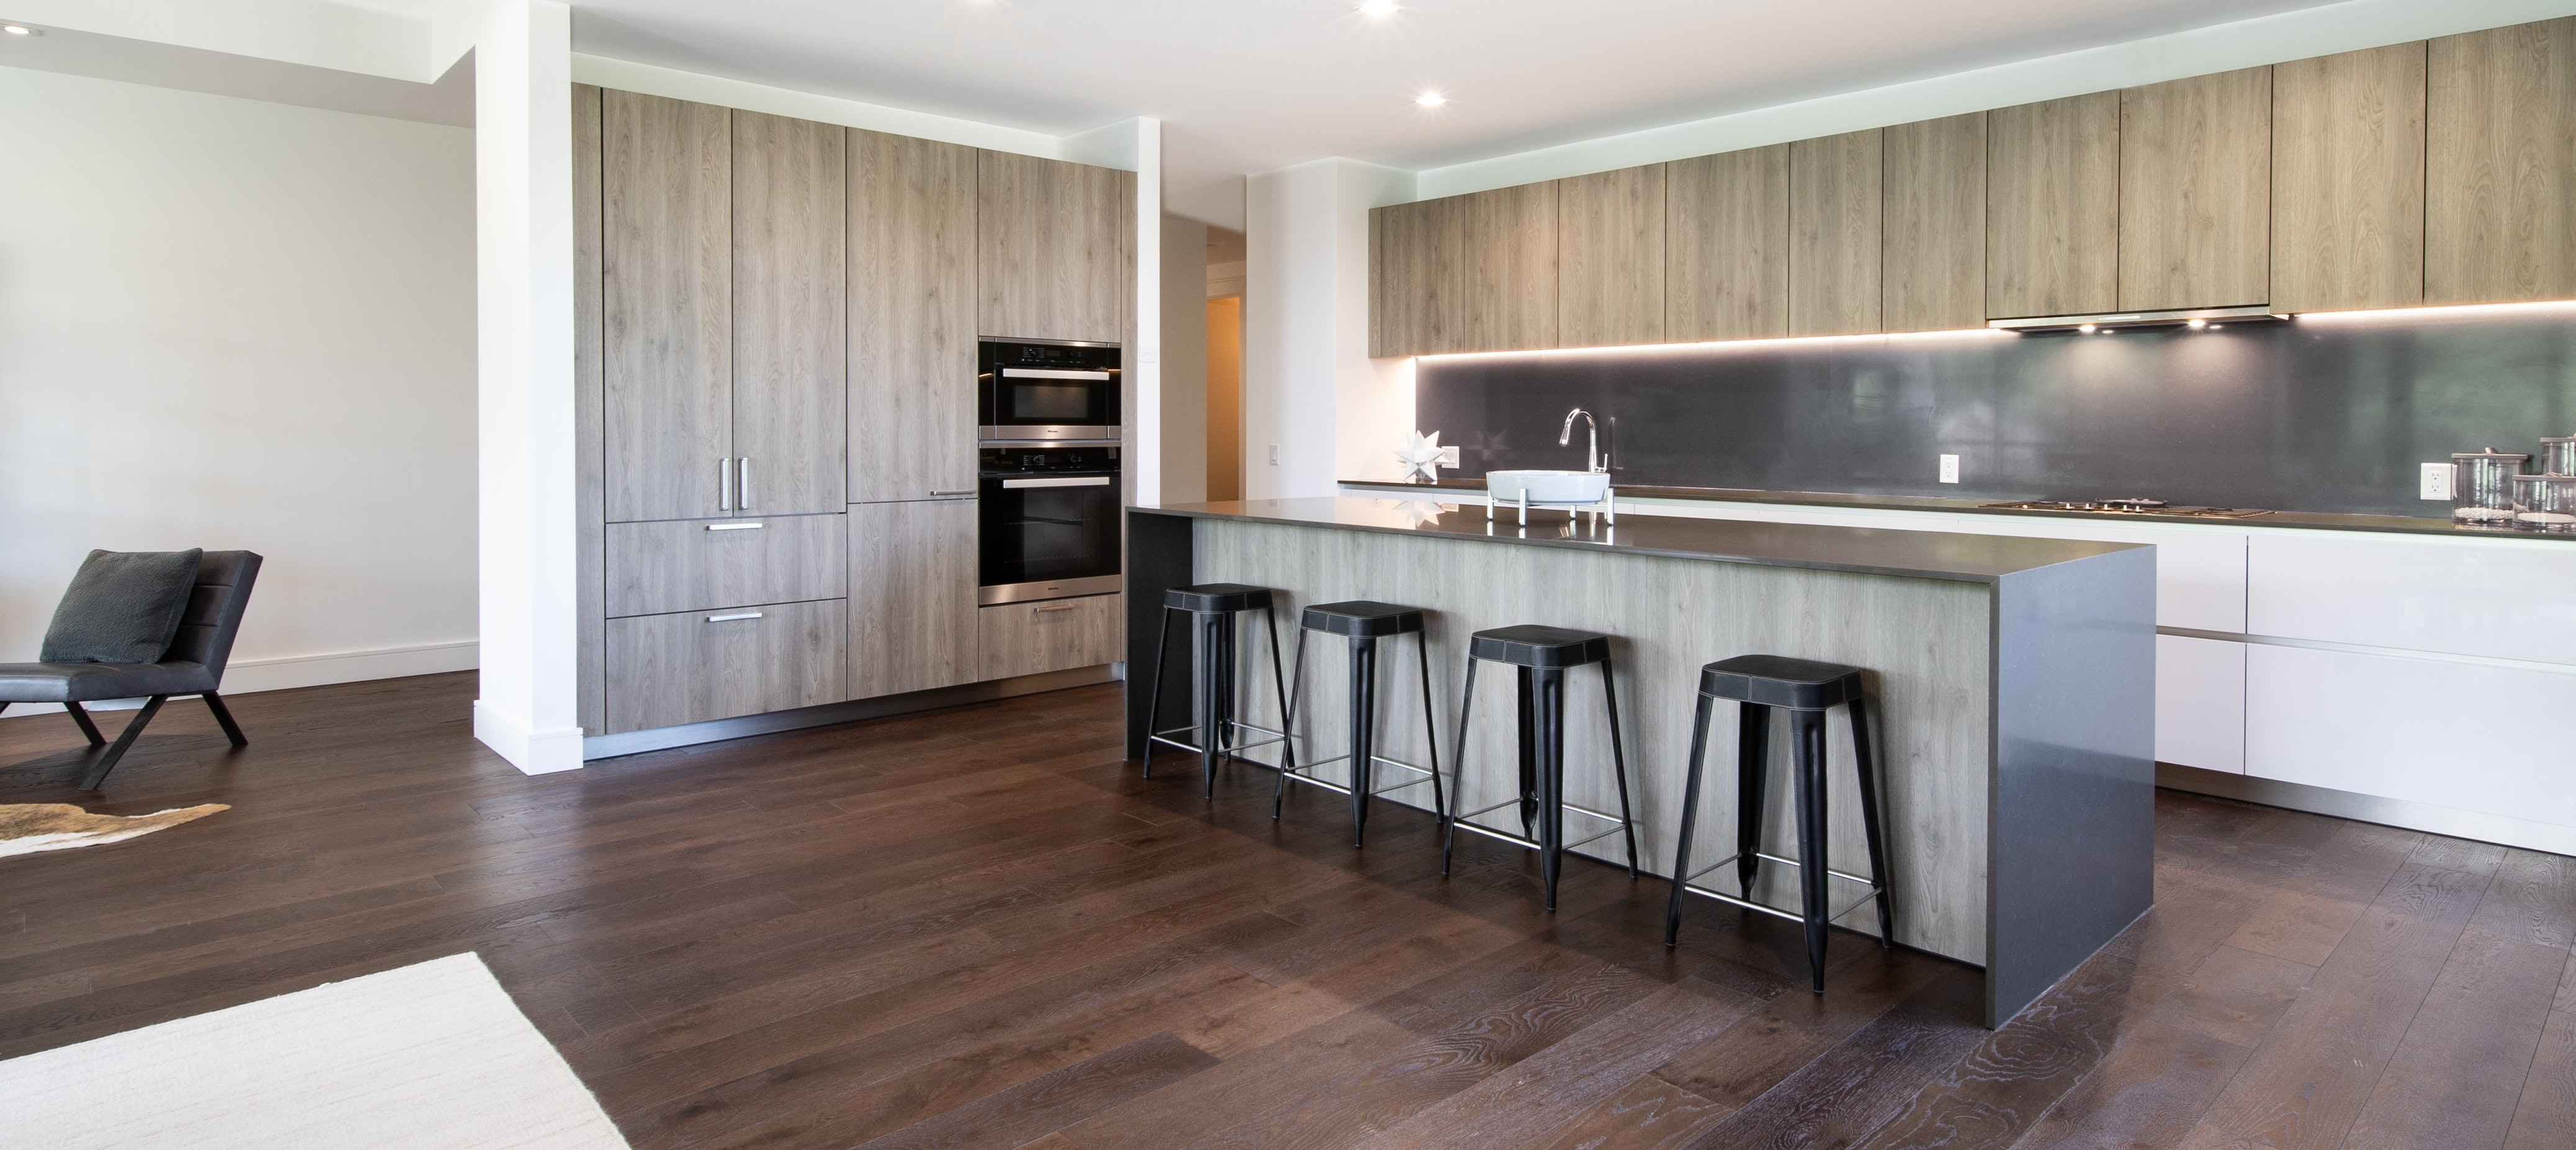 Floor Trends of 2020 - Textures, Styles, and Colours